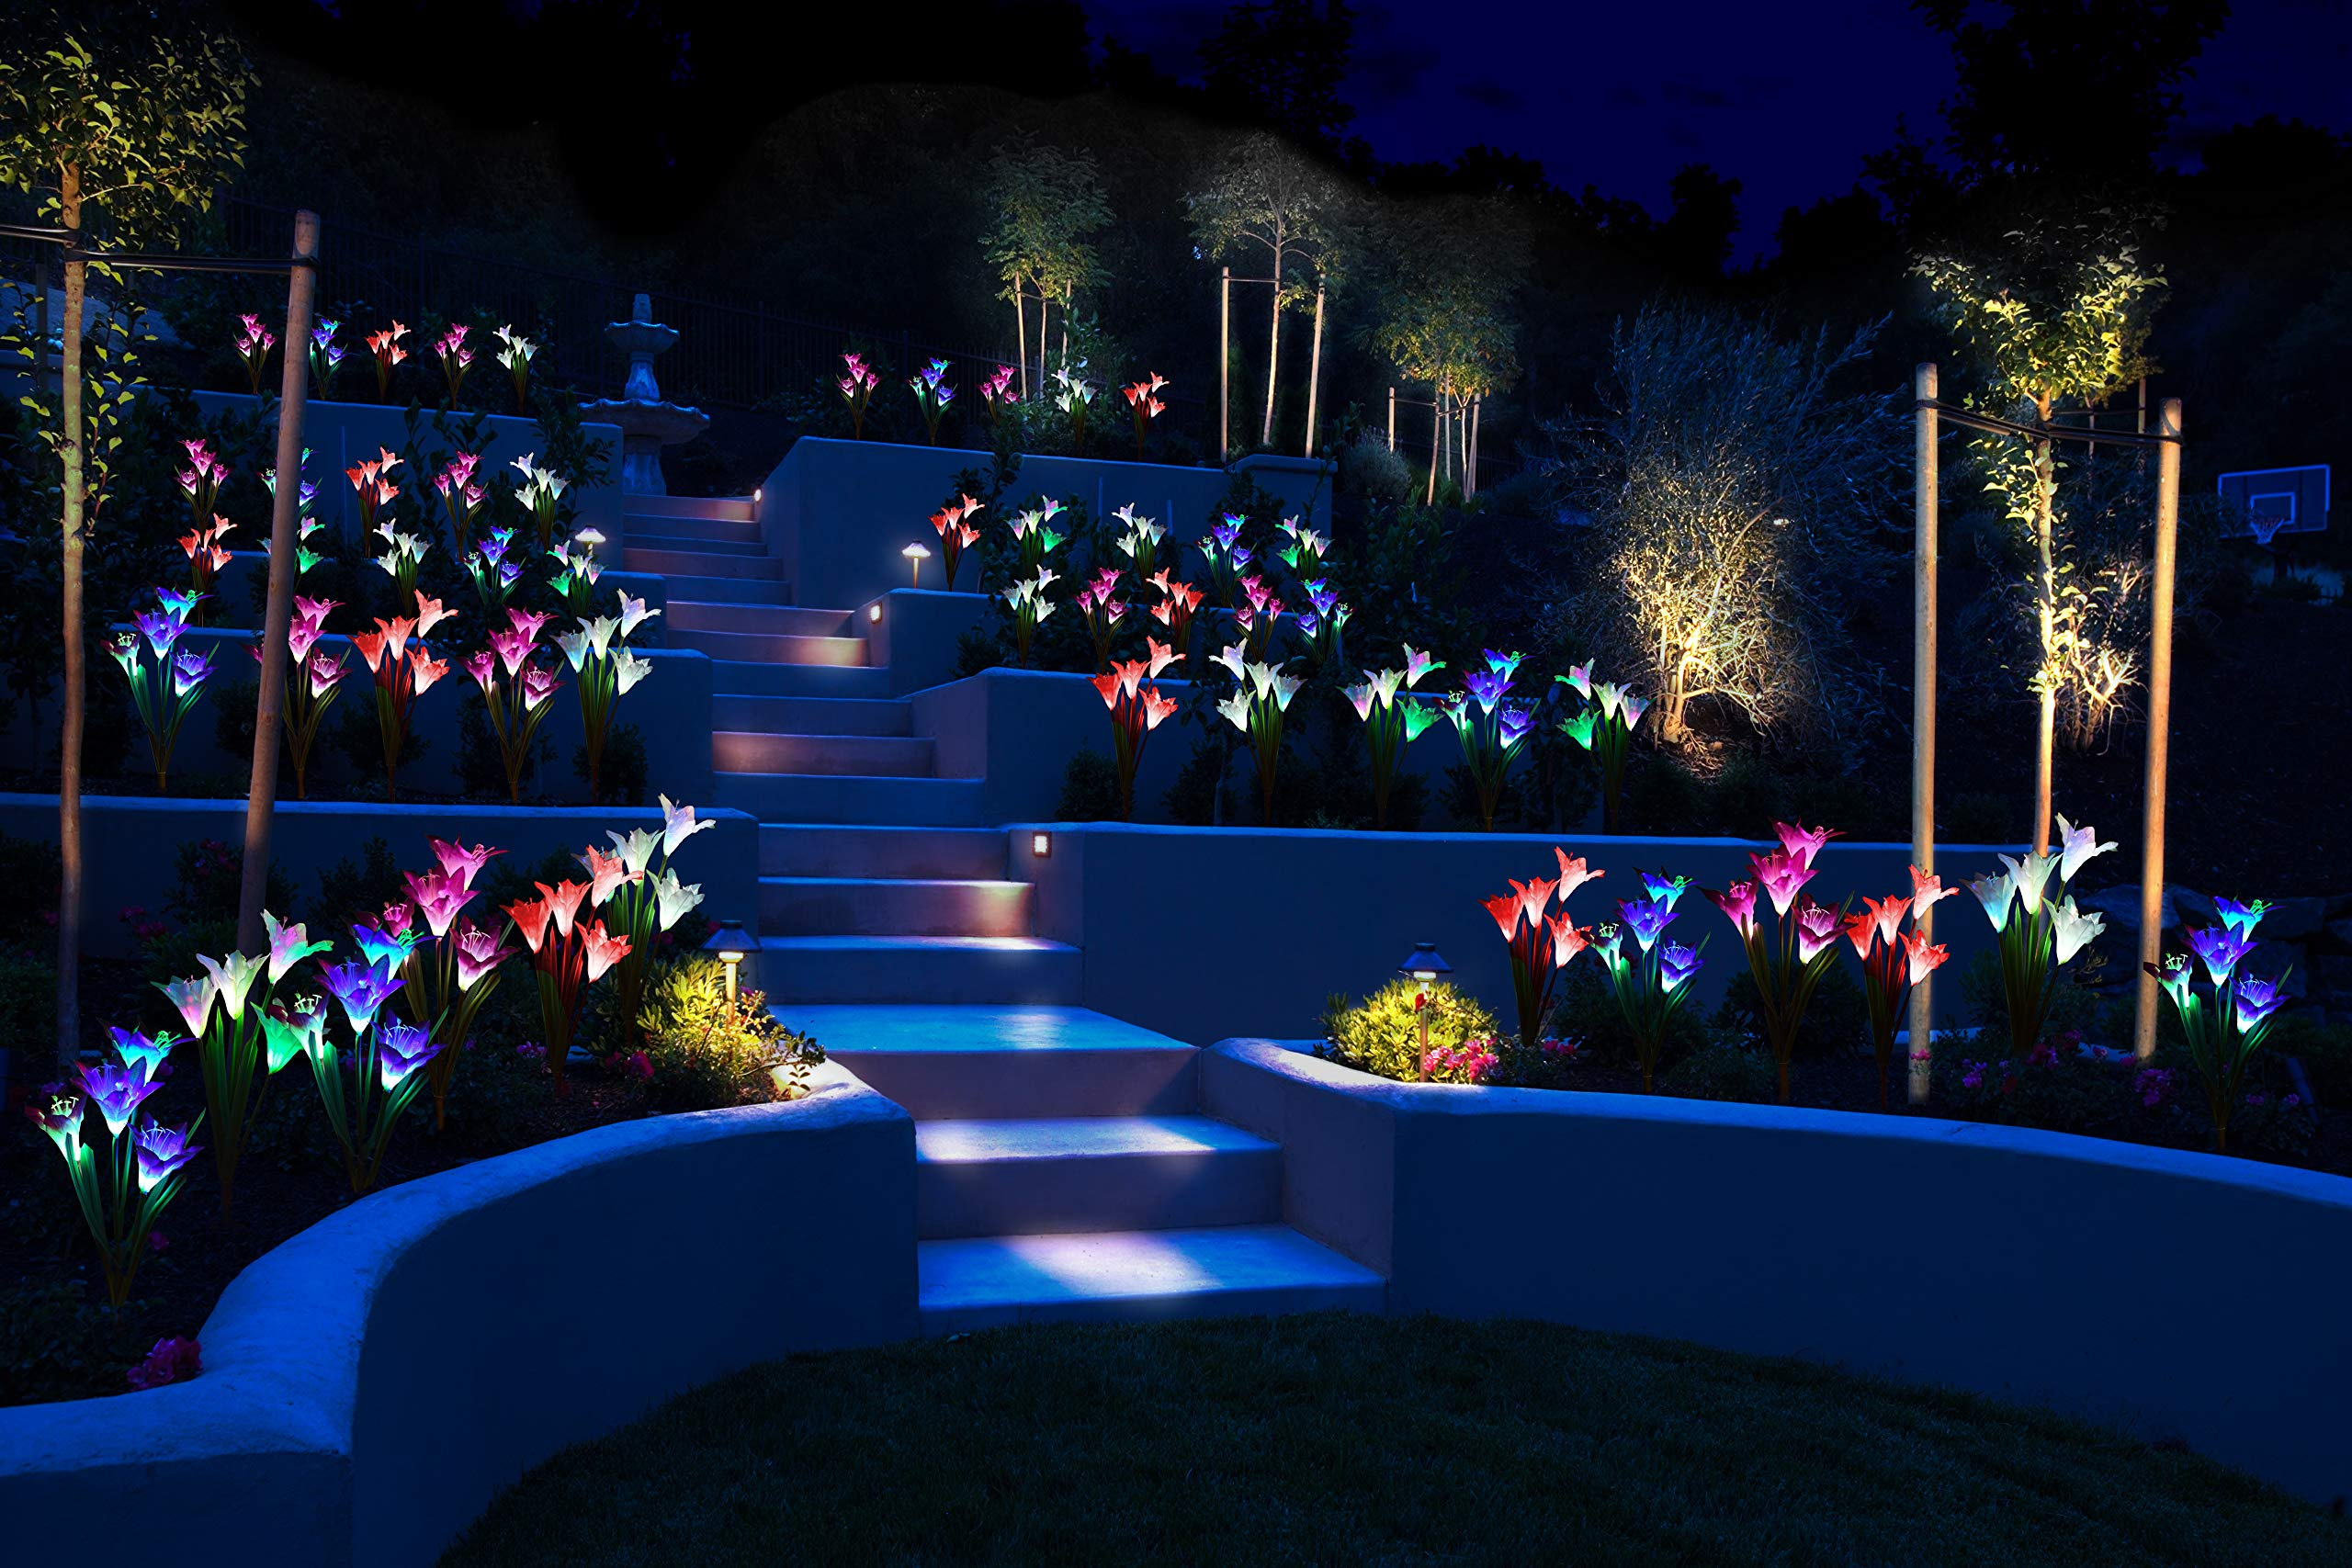 [4 Pack] Solar Lights Outdoor - Solar Garden Lights with 16 Lily Flowers | Color Changing LED Solar Stake Lights for Garden, Patio, Path, Backyard by AWJ Products (Image #6)